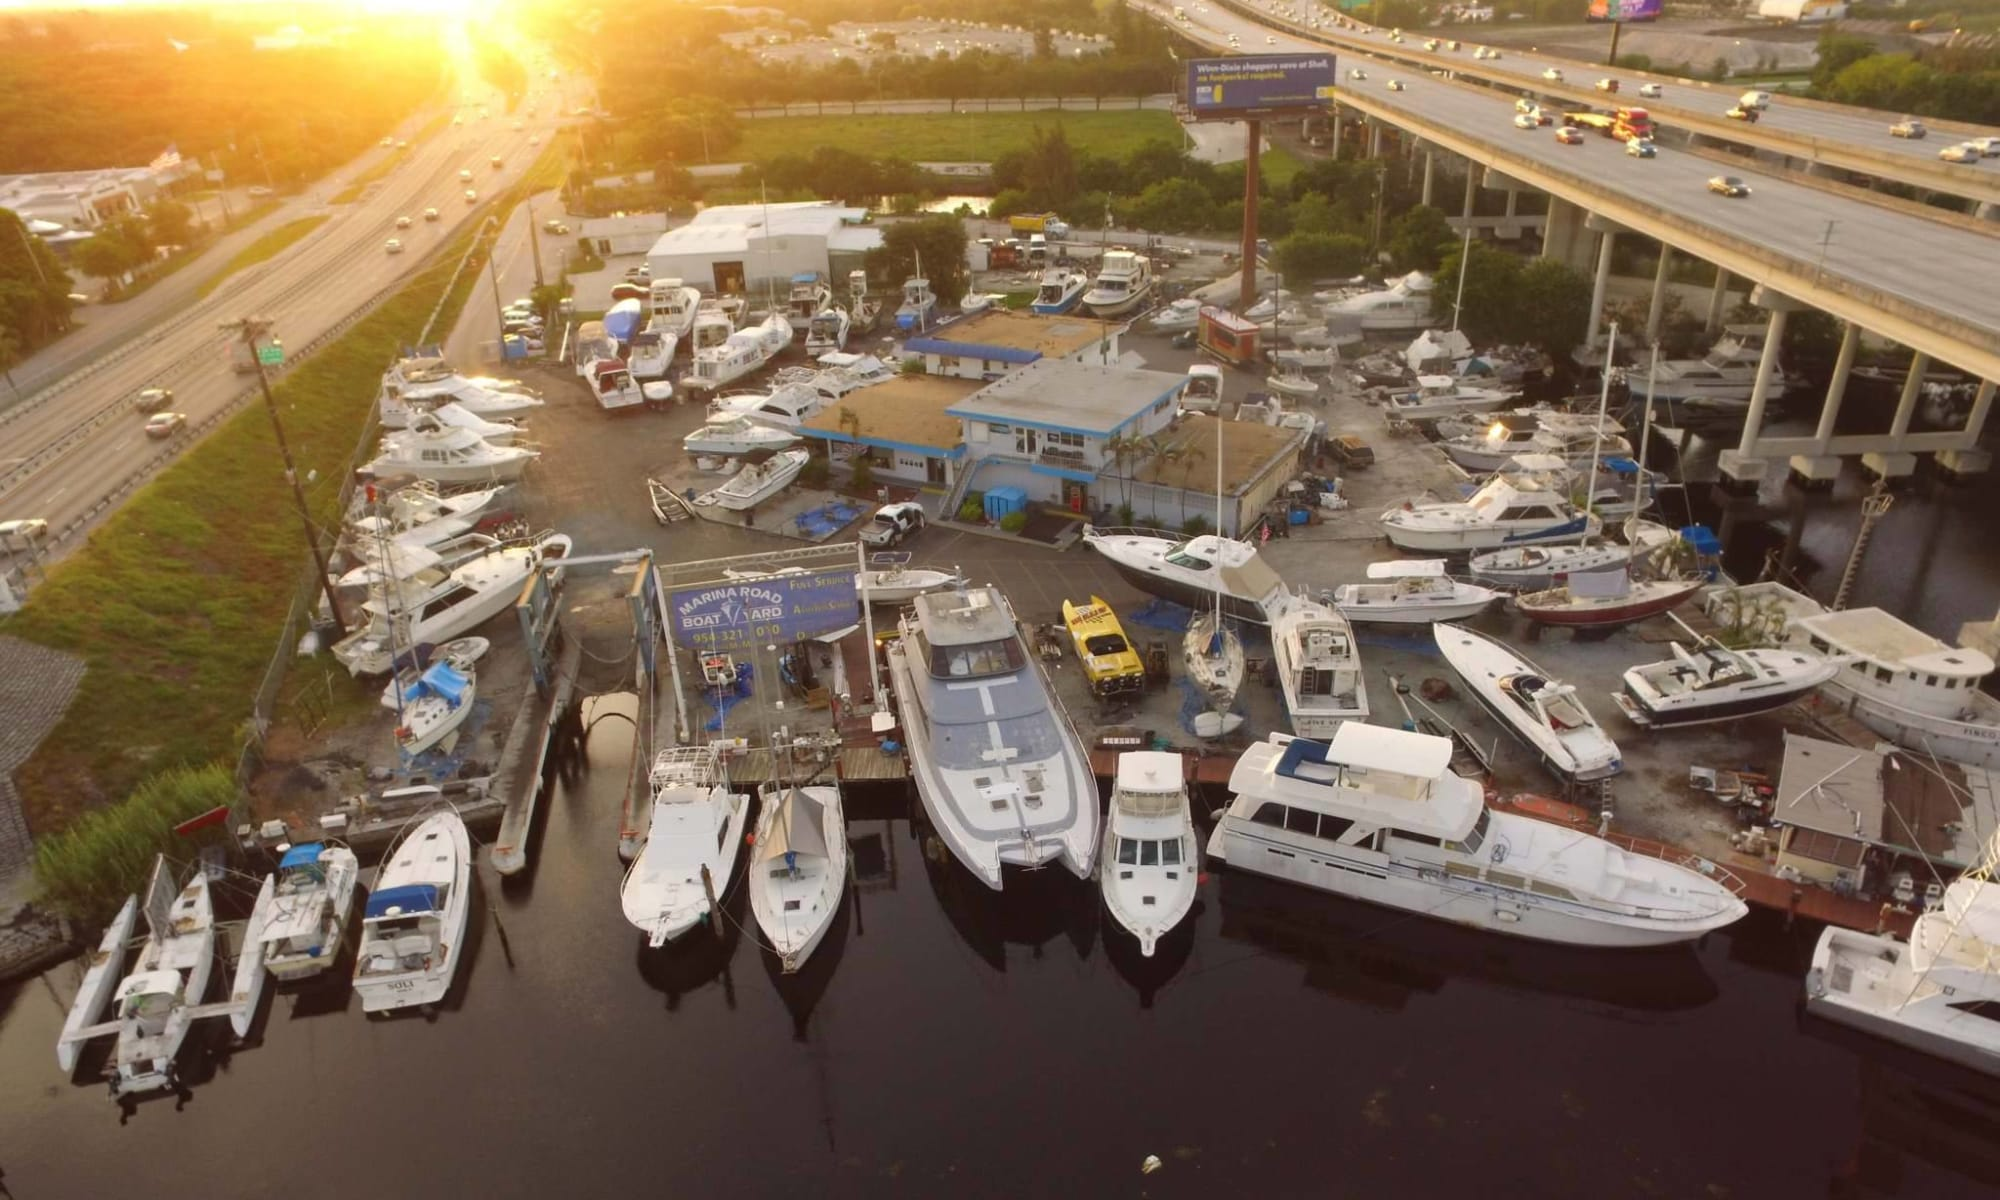 Aerial view of Marina Road Boat Yard